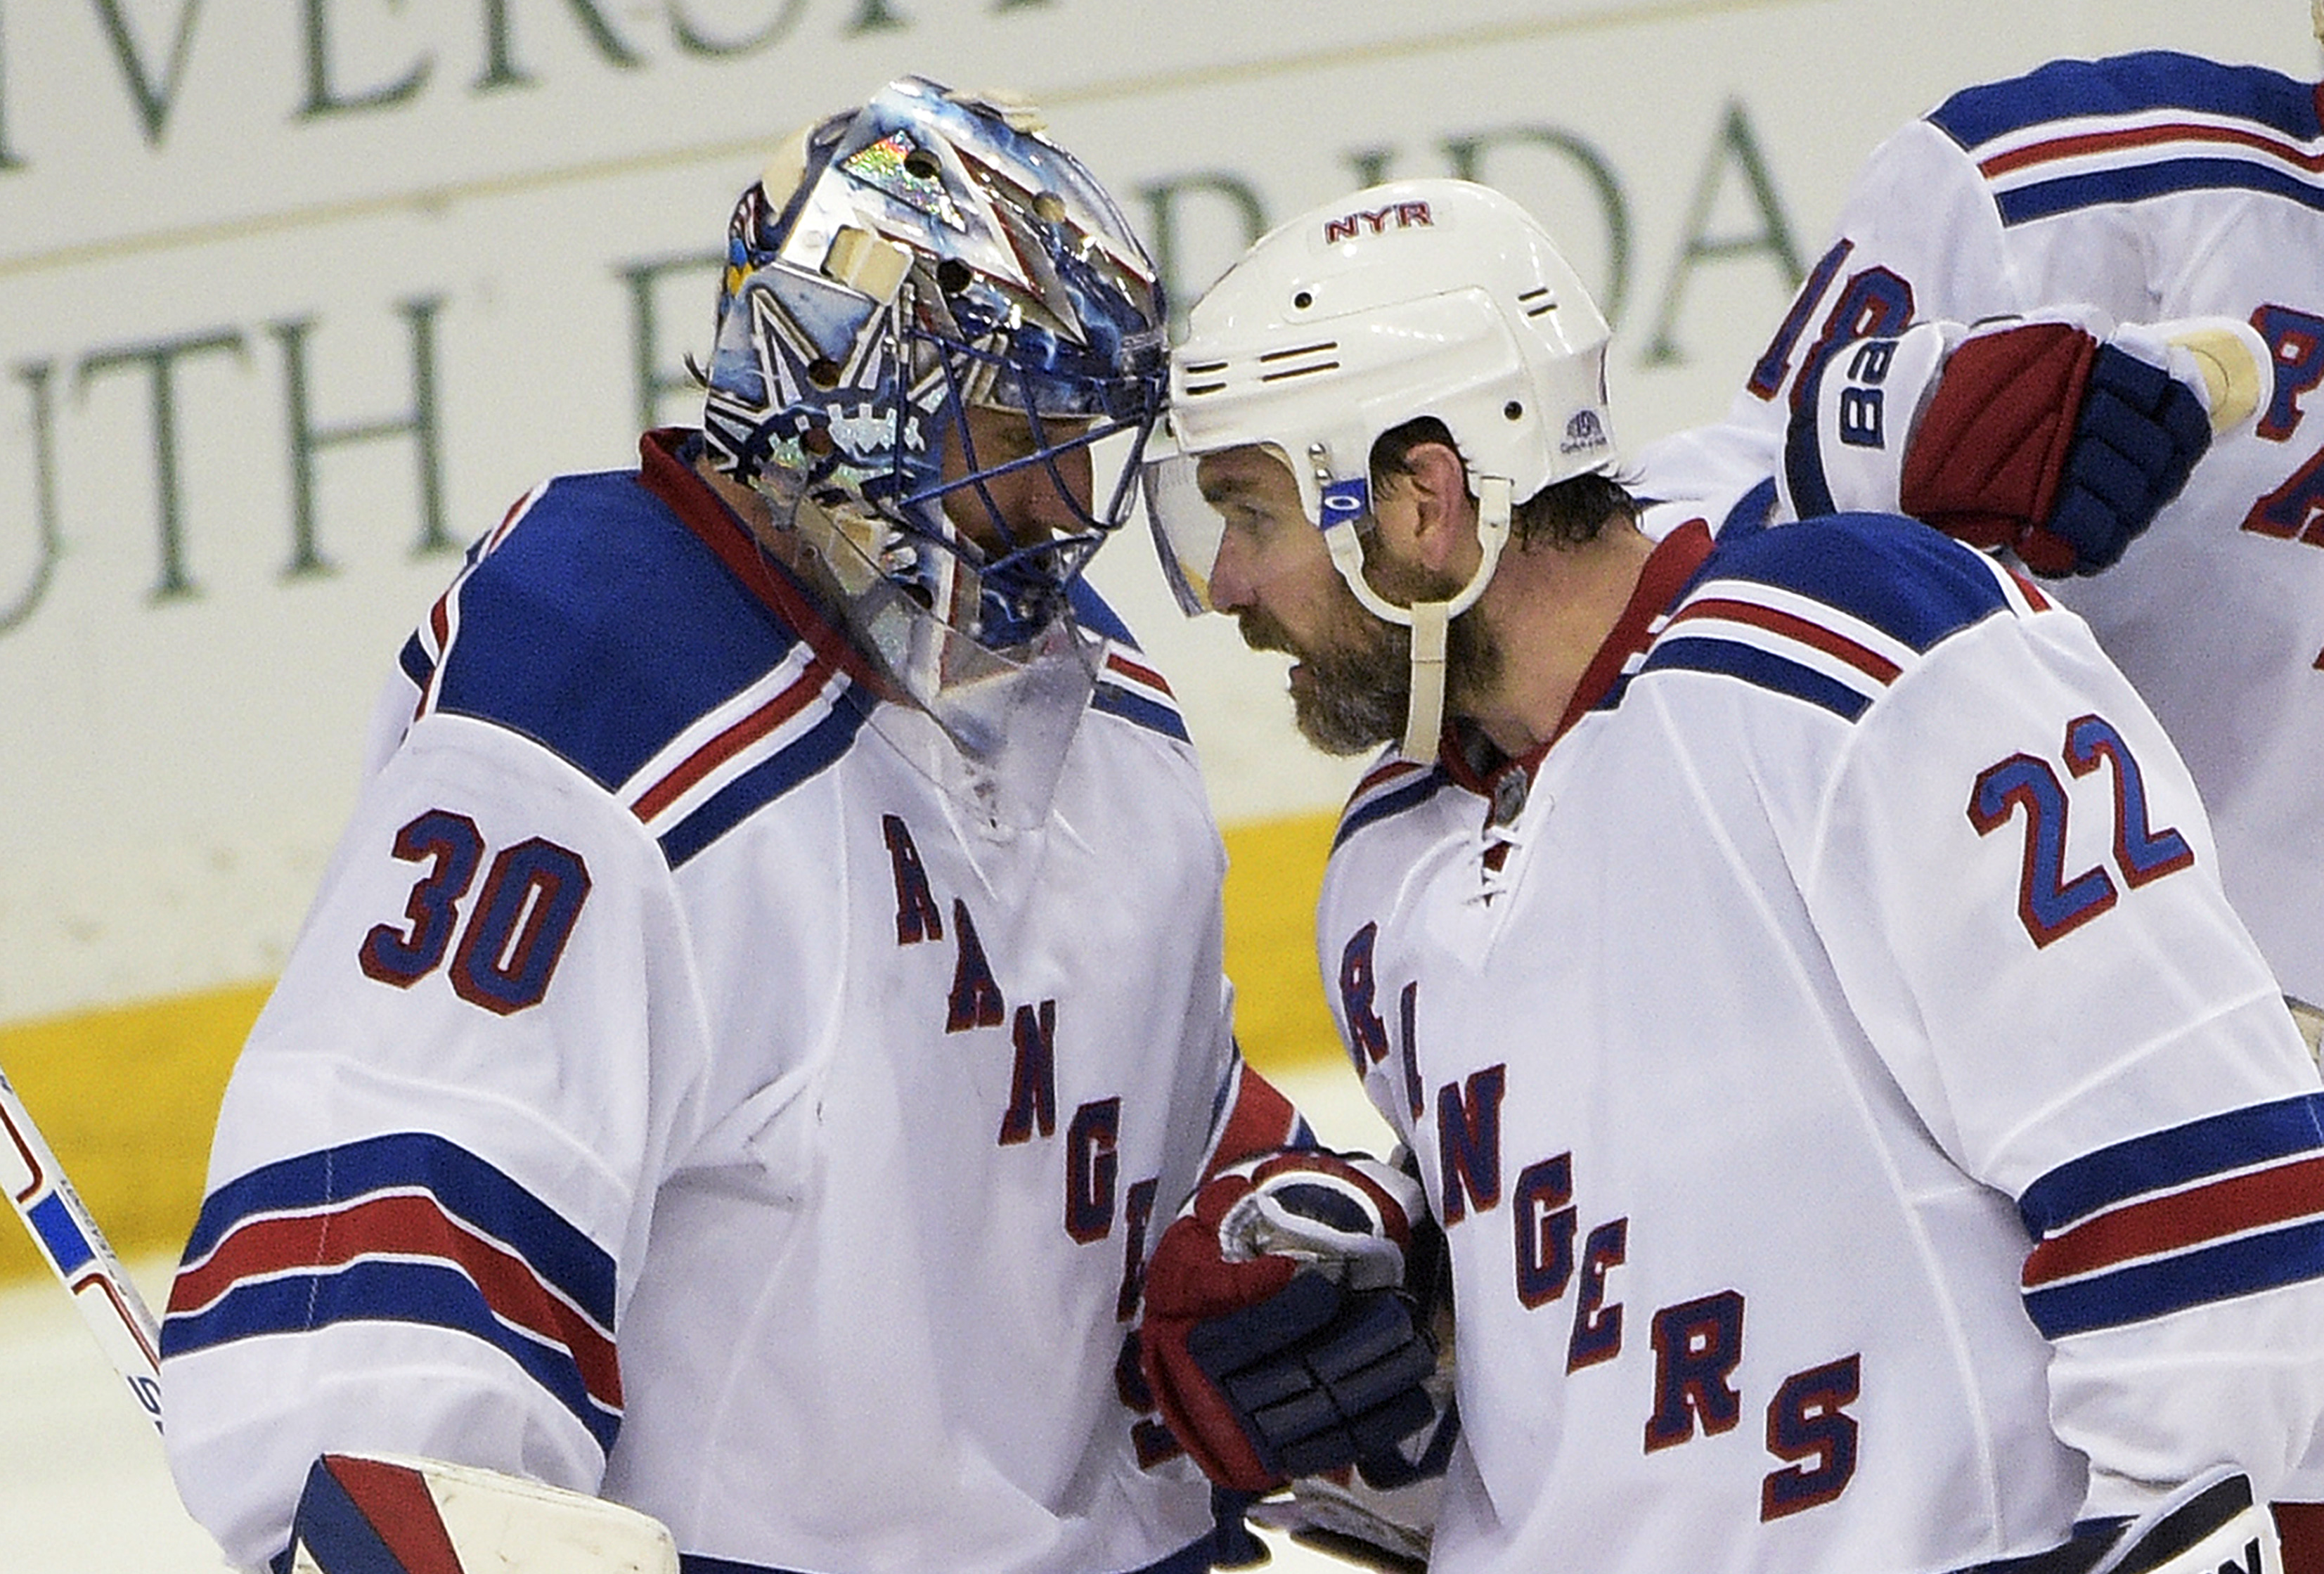 New York Rangers goalie Henrik Lundqvist (30), of Sweden, and defenseman Dan Boyle (22) congratulate each other after the Rangers defeated the Tampa Bay Lightning 5-1 in Game 4 of the Eastern Conference finals of the NHL hockey Stanley Cup playoffs, Frida